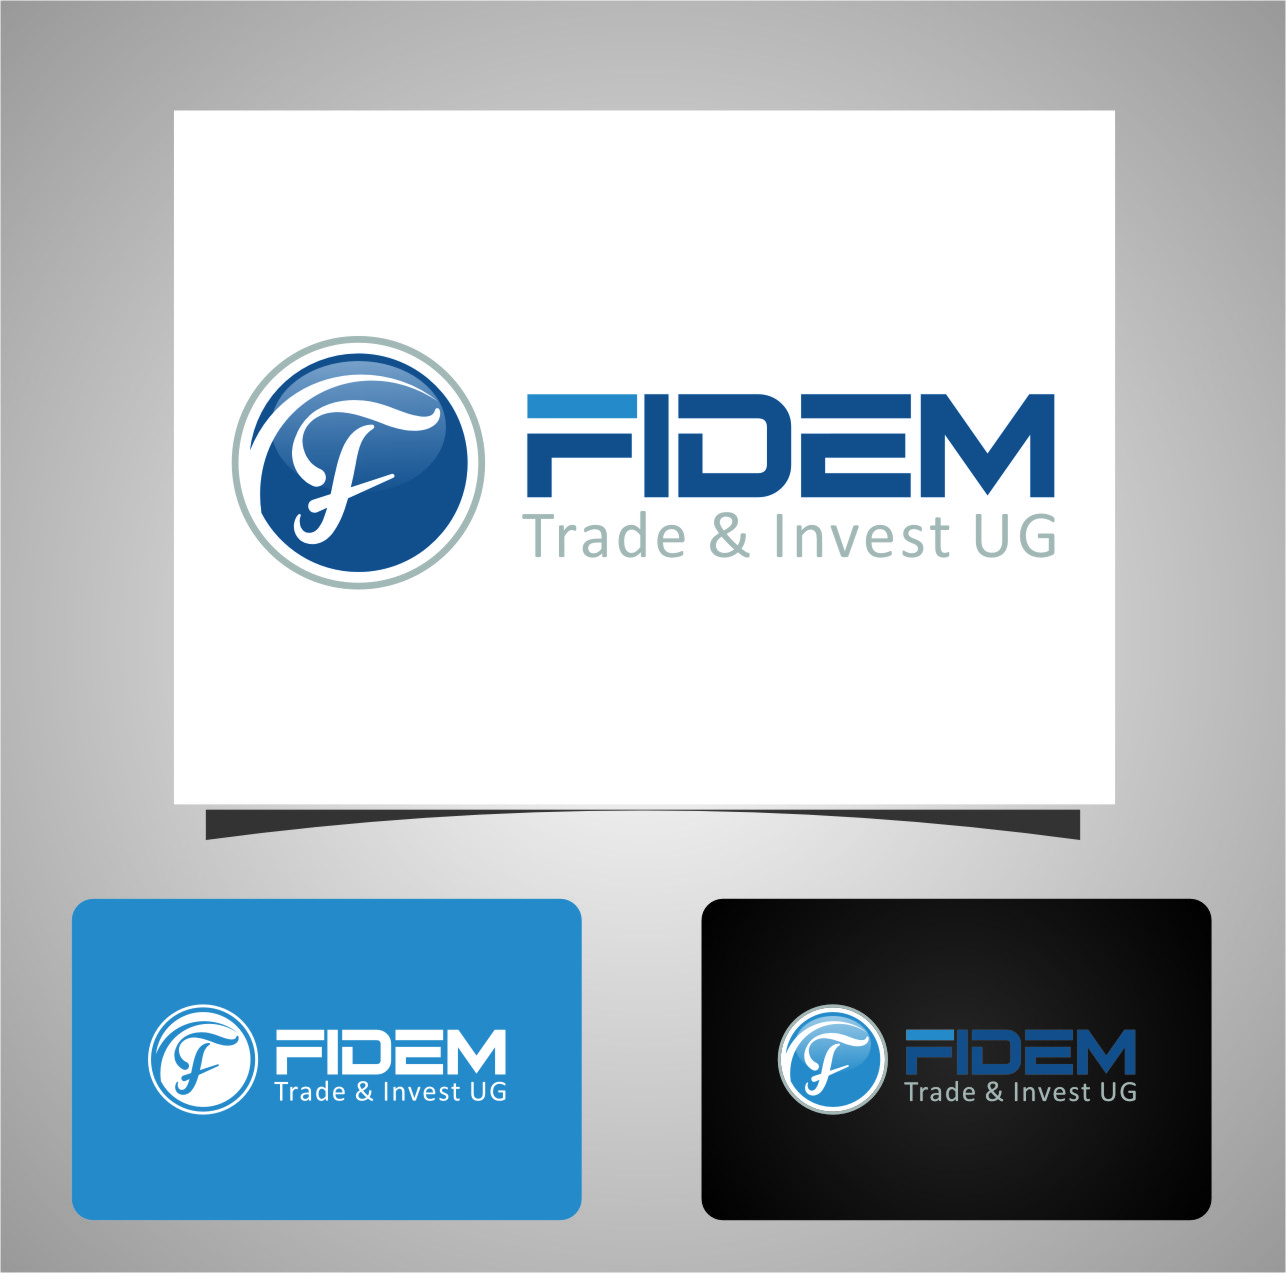 Logo Design by Ngepet_art - Entry No. 806 in the Logo Design Contest Professional Logo Design for FIDEM Trade & Invest UG.